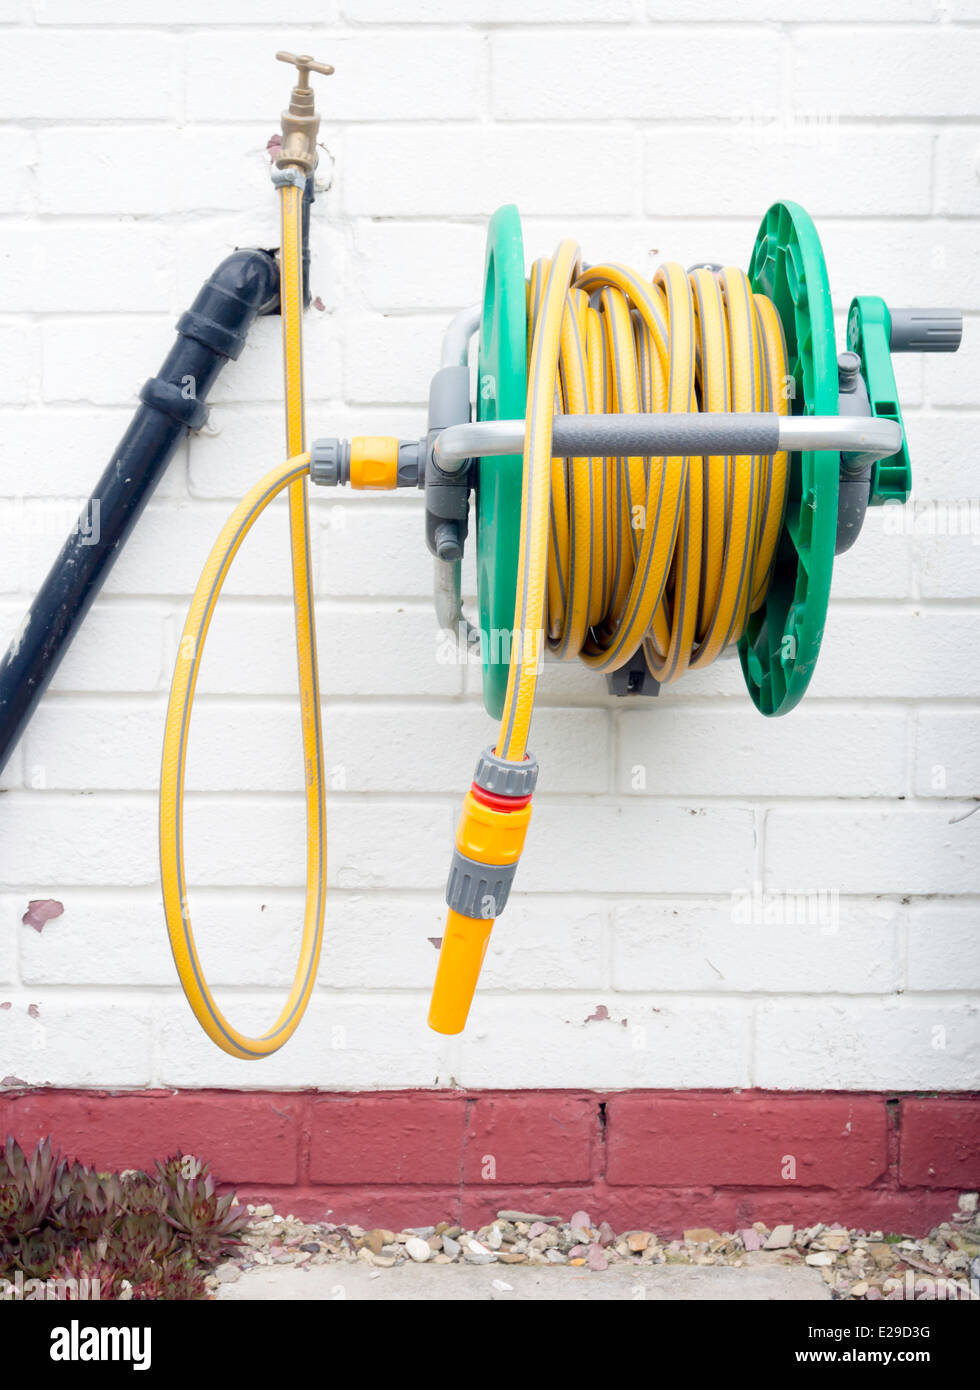 A Garden Hose Reel With Yellow Kink Resisting Hose Wall Mounted For  Convenient Deployment